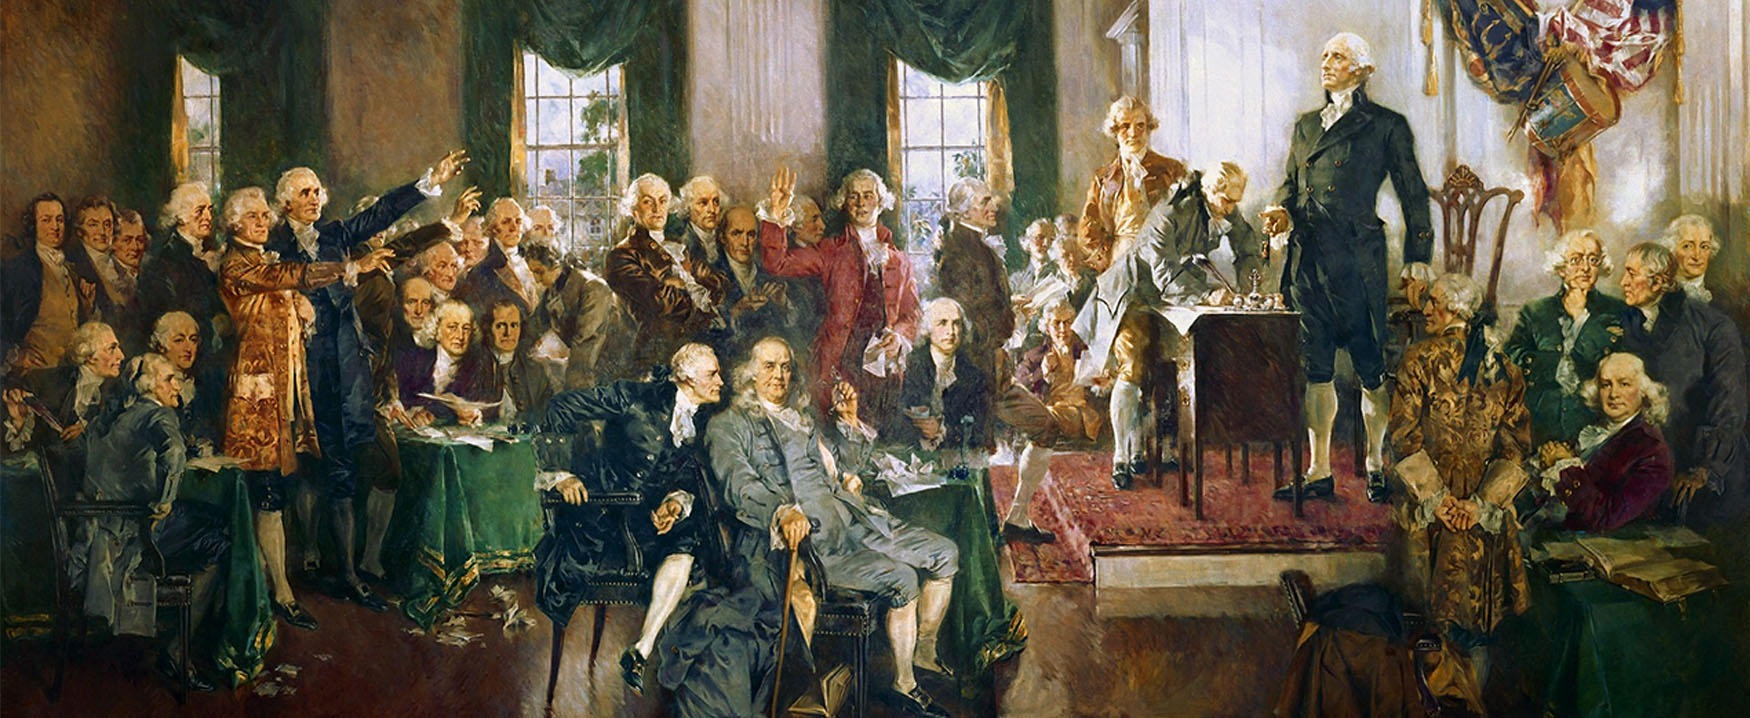 The image displays Howard Chandler Christy's painting, titled Signing of the Constitution.  The painting depicts forty people seated or standing around a room in what is now known as Independence Hall.  Featured are George Washington, Benjamin Franklin, Alexander Hamilton, and James Madison.  In the moment captured by the artist, delegate Richard Spaight of North Carolina signs the Constitution.